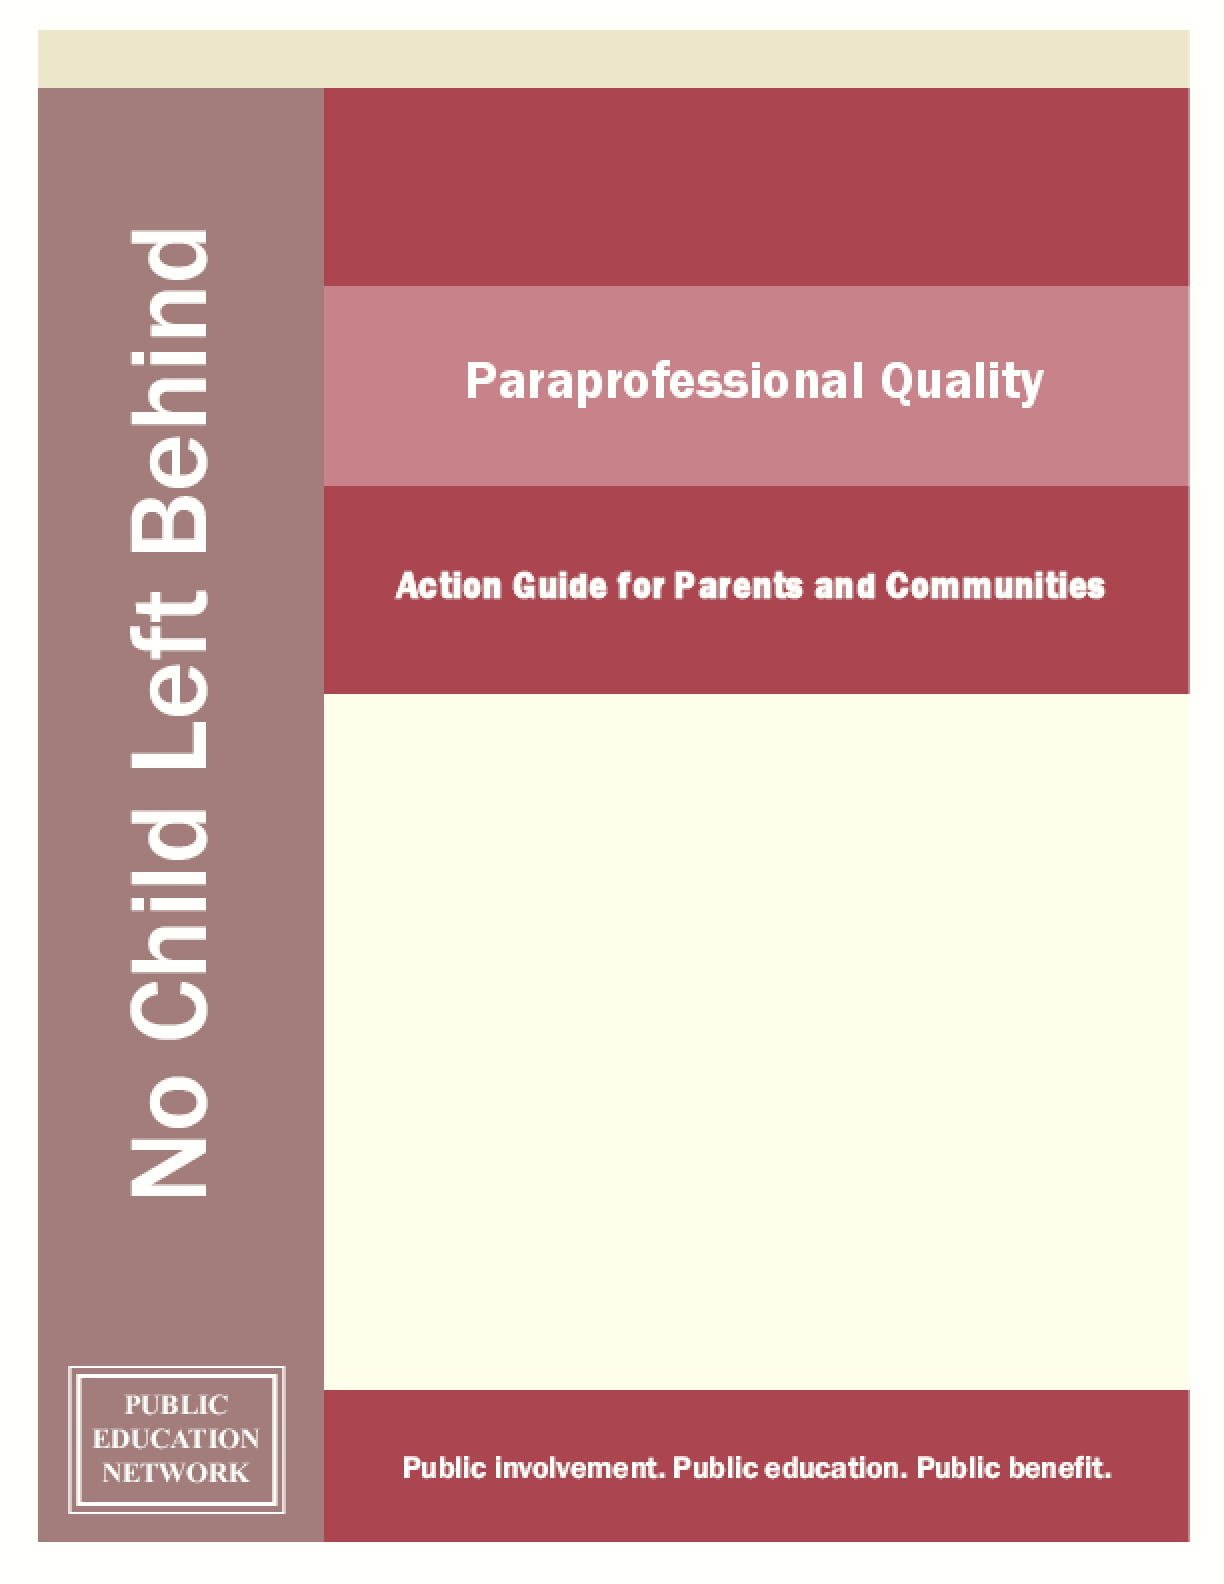 Paraprofessional Quality: Action Guide for Parents and Communities